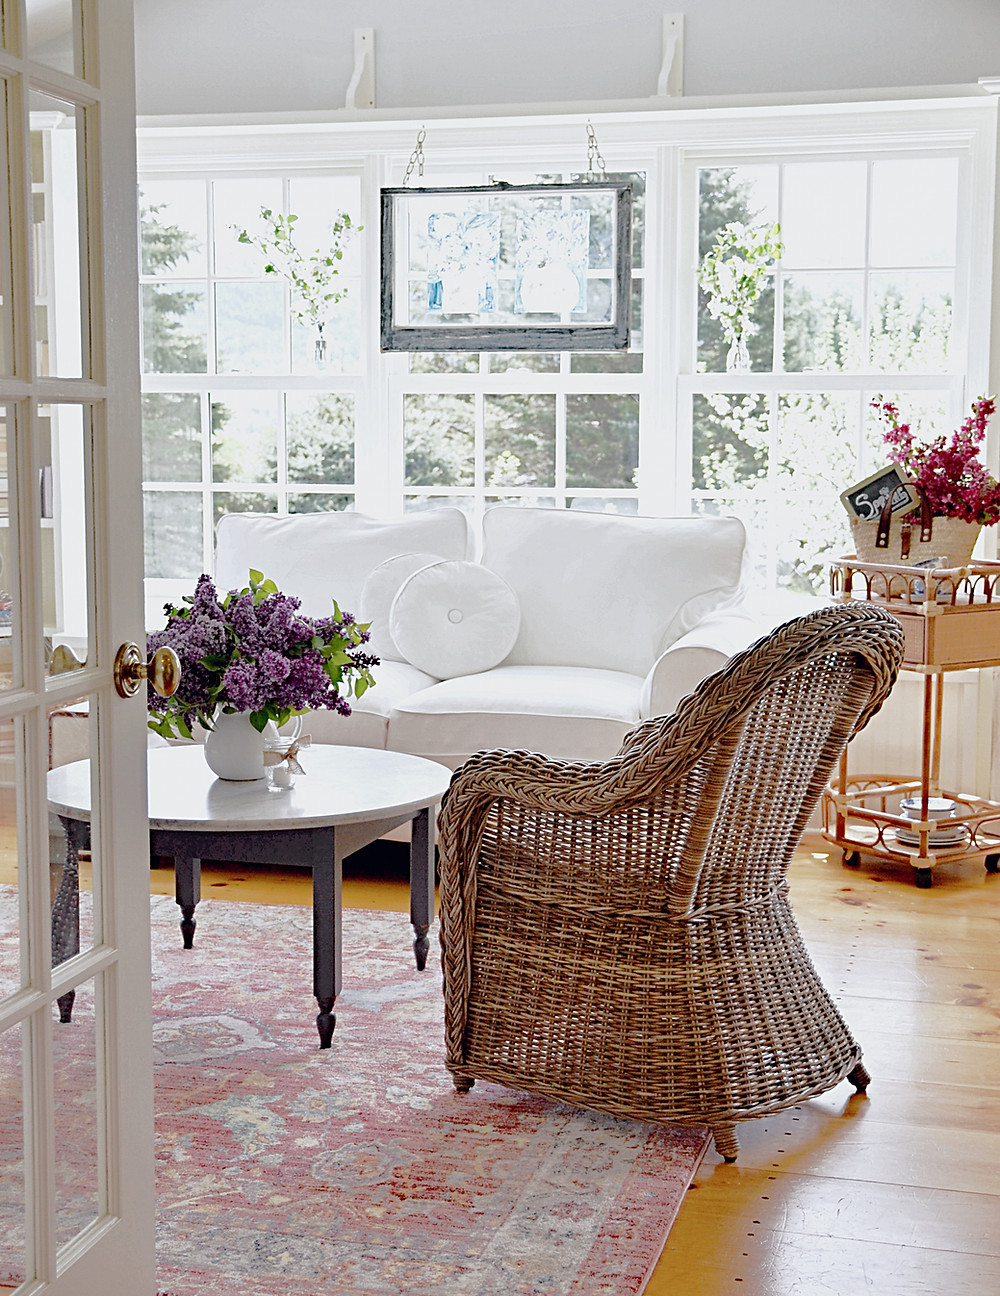 Sunroom makeover with white loveseat, vintage window hanging and a lot of flowers.